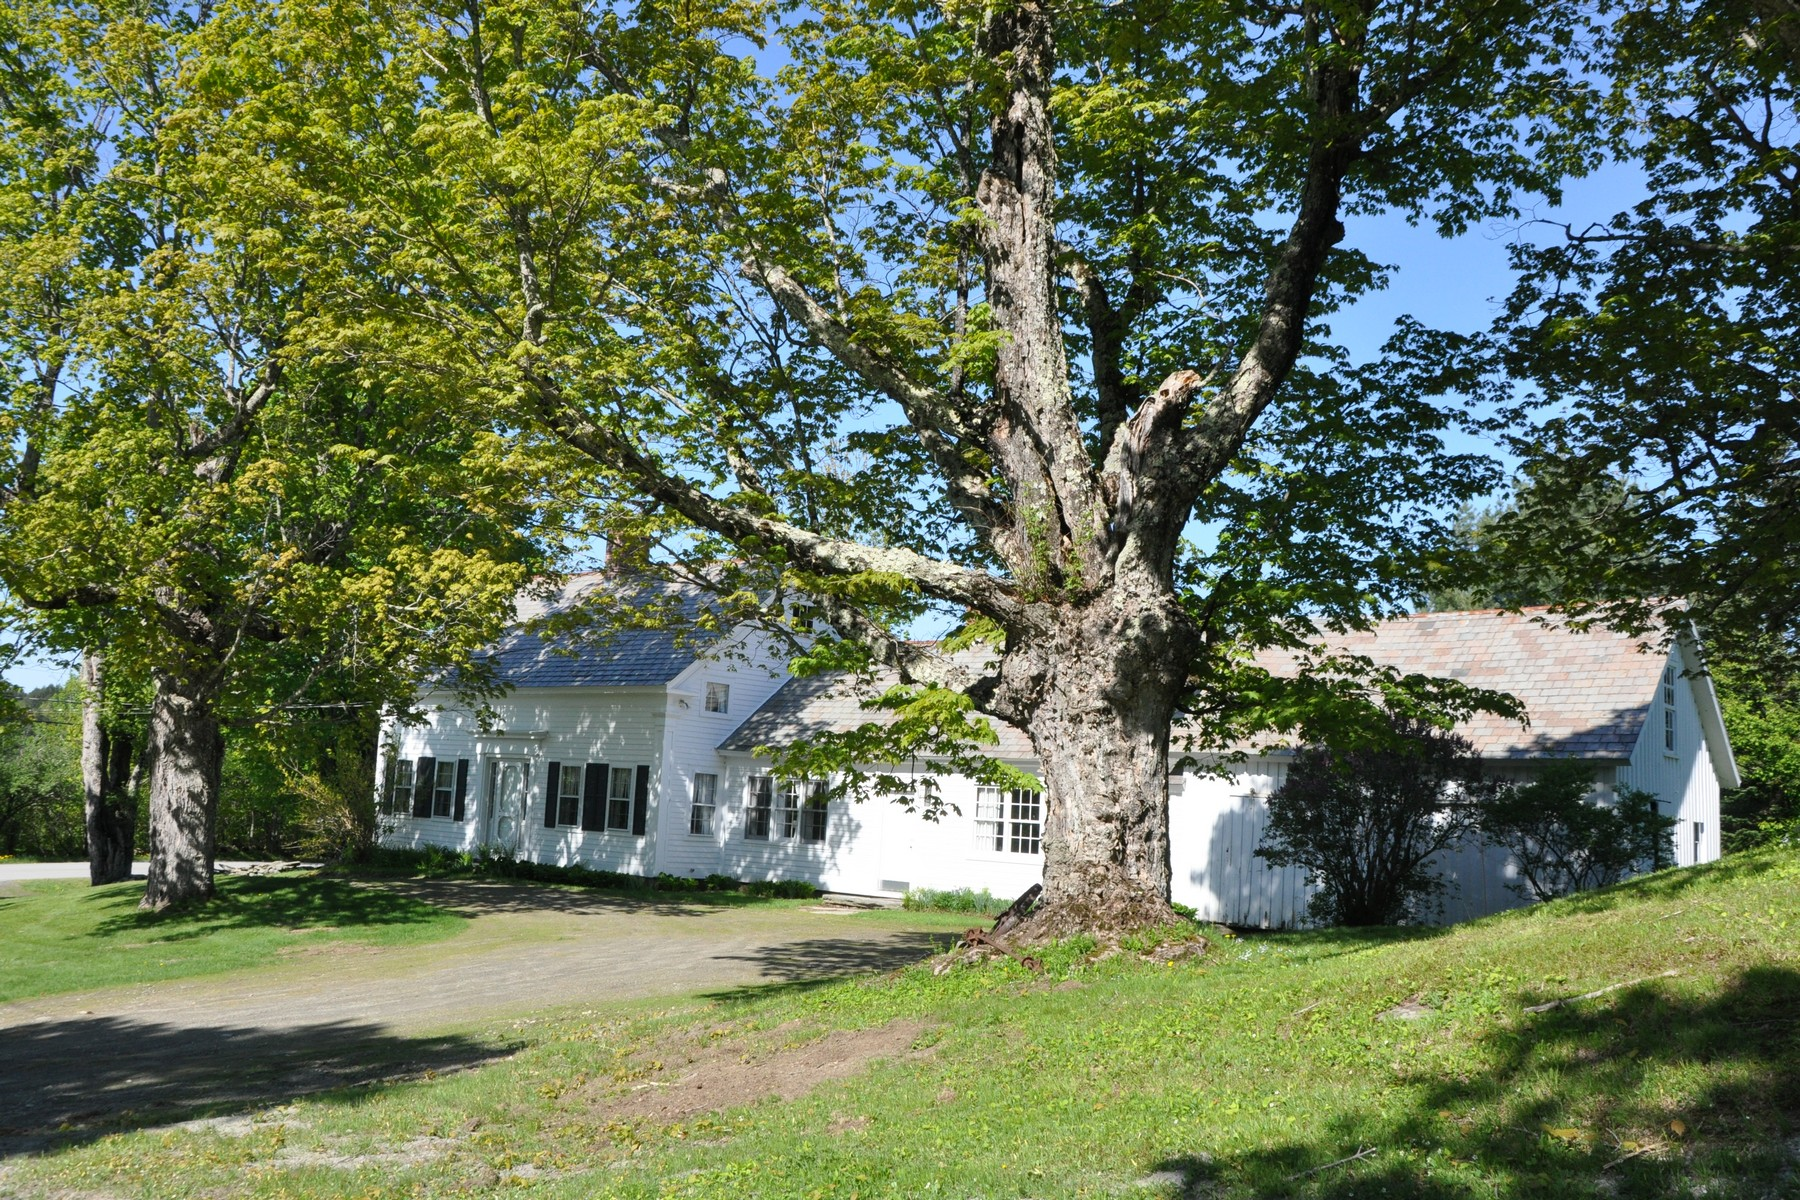 Single Family Homes for Sale at Antique Cape with 10+ Acres - Dover 1 Negus Rd Dover, Vermont 05356 United States